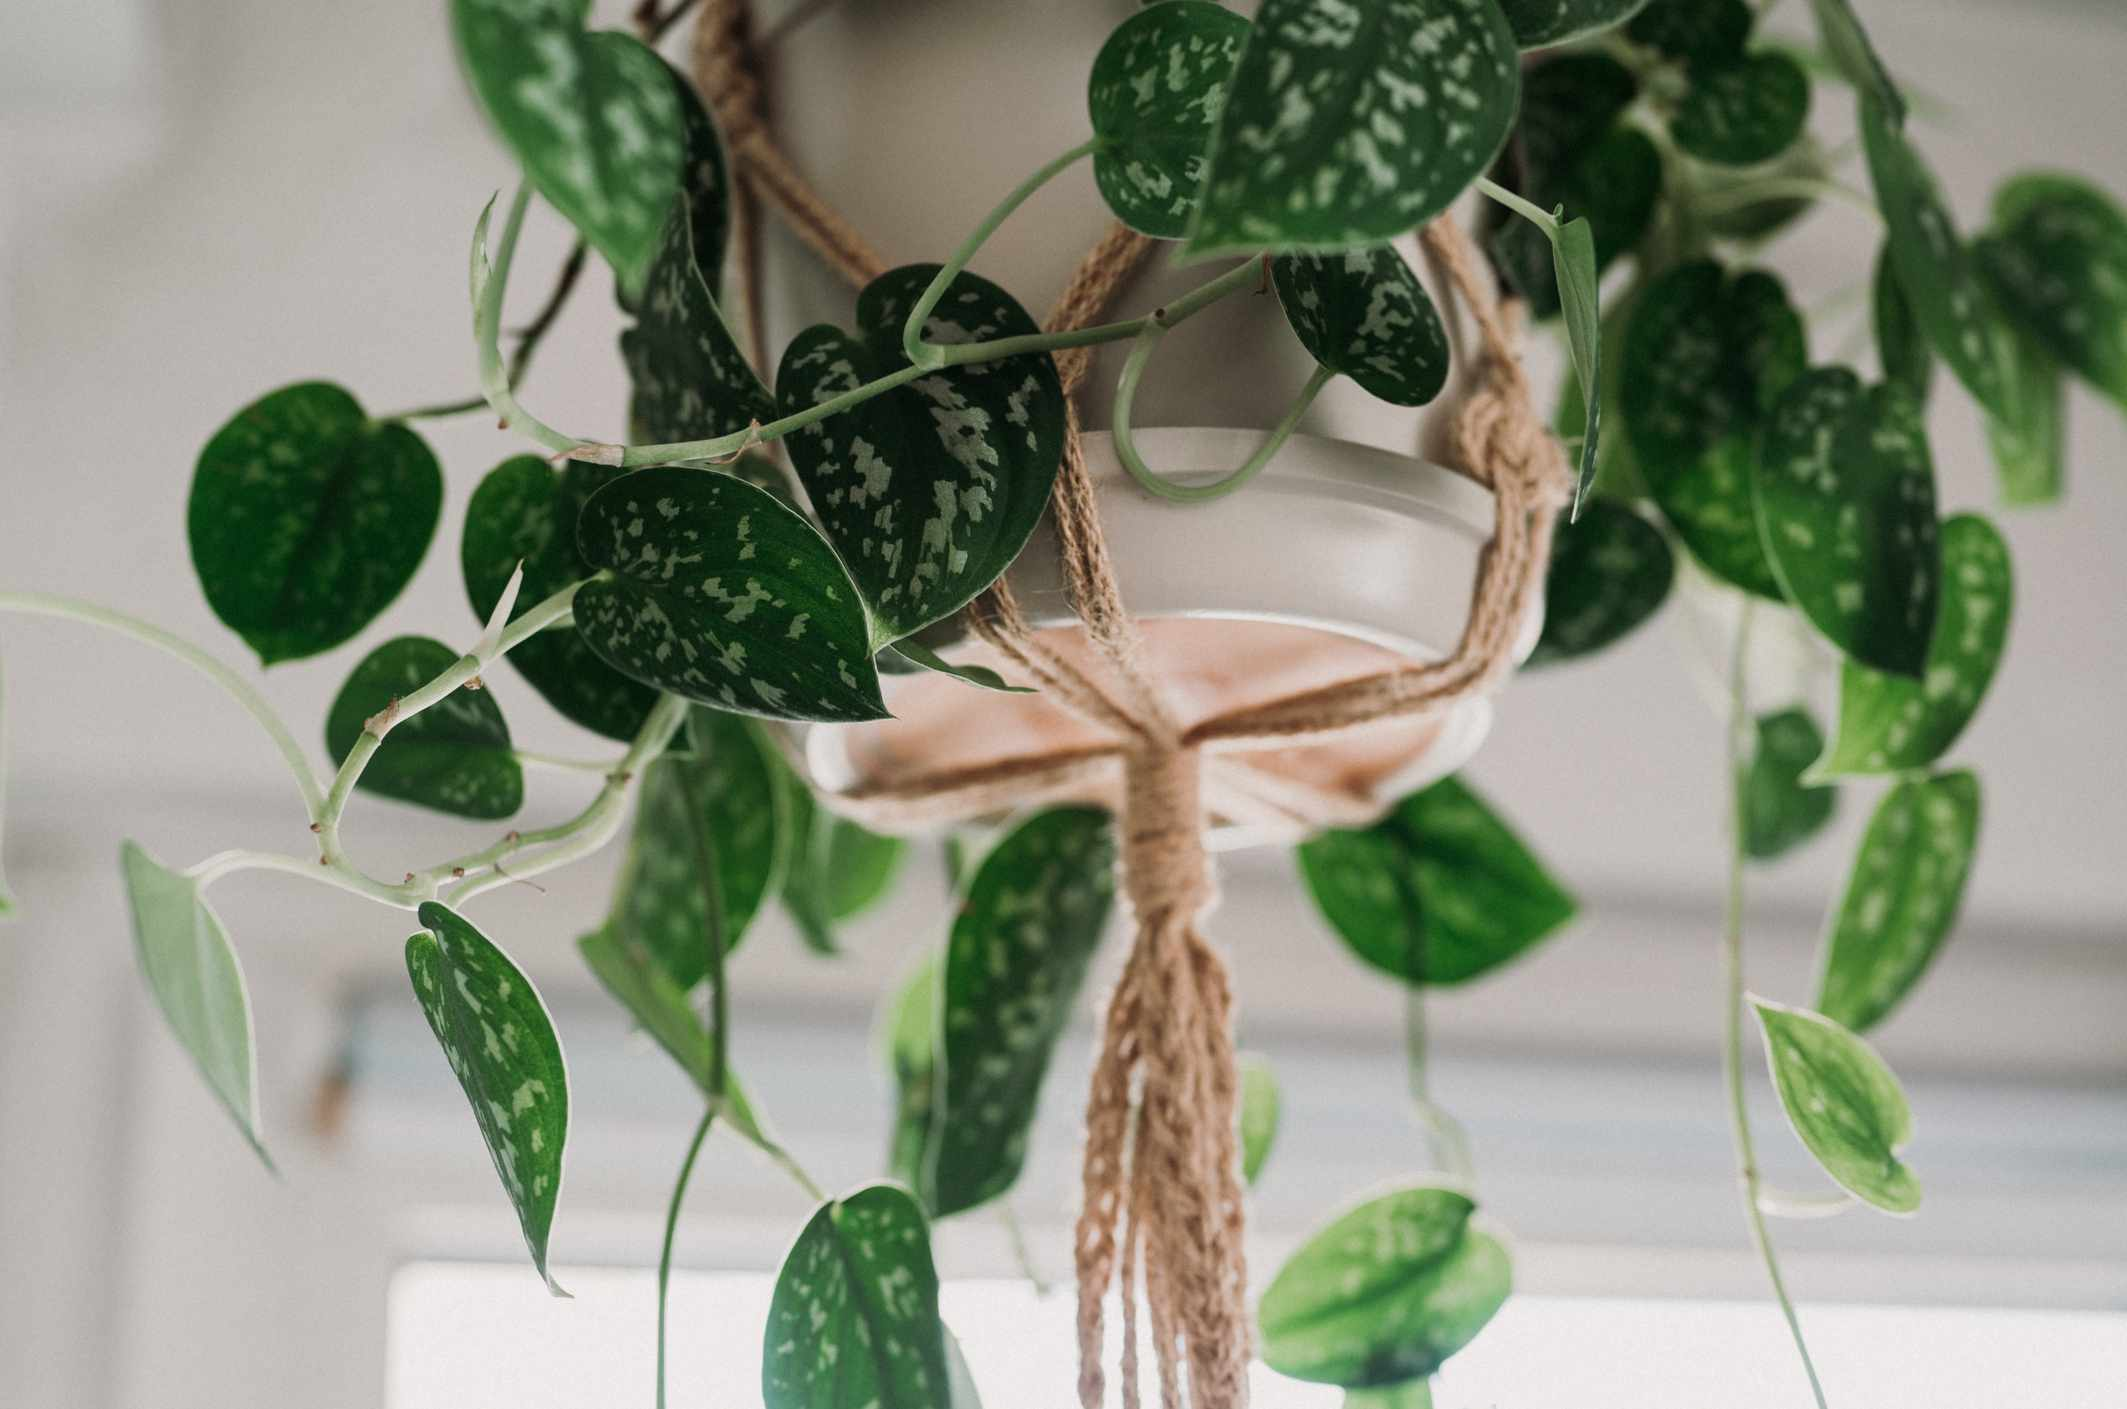 Scindapsus pictus 'Argyraeus' in a white hanging pot with a macrame hanger - shot from below.